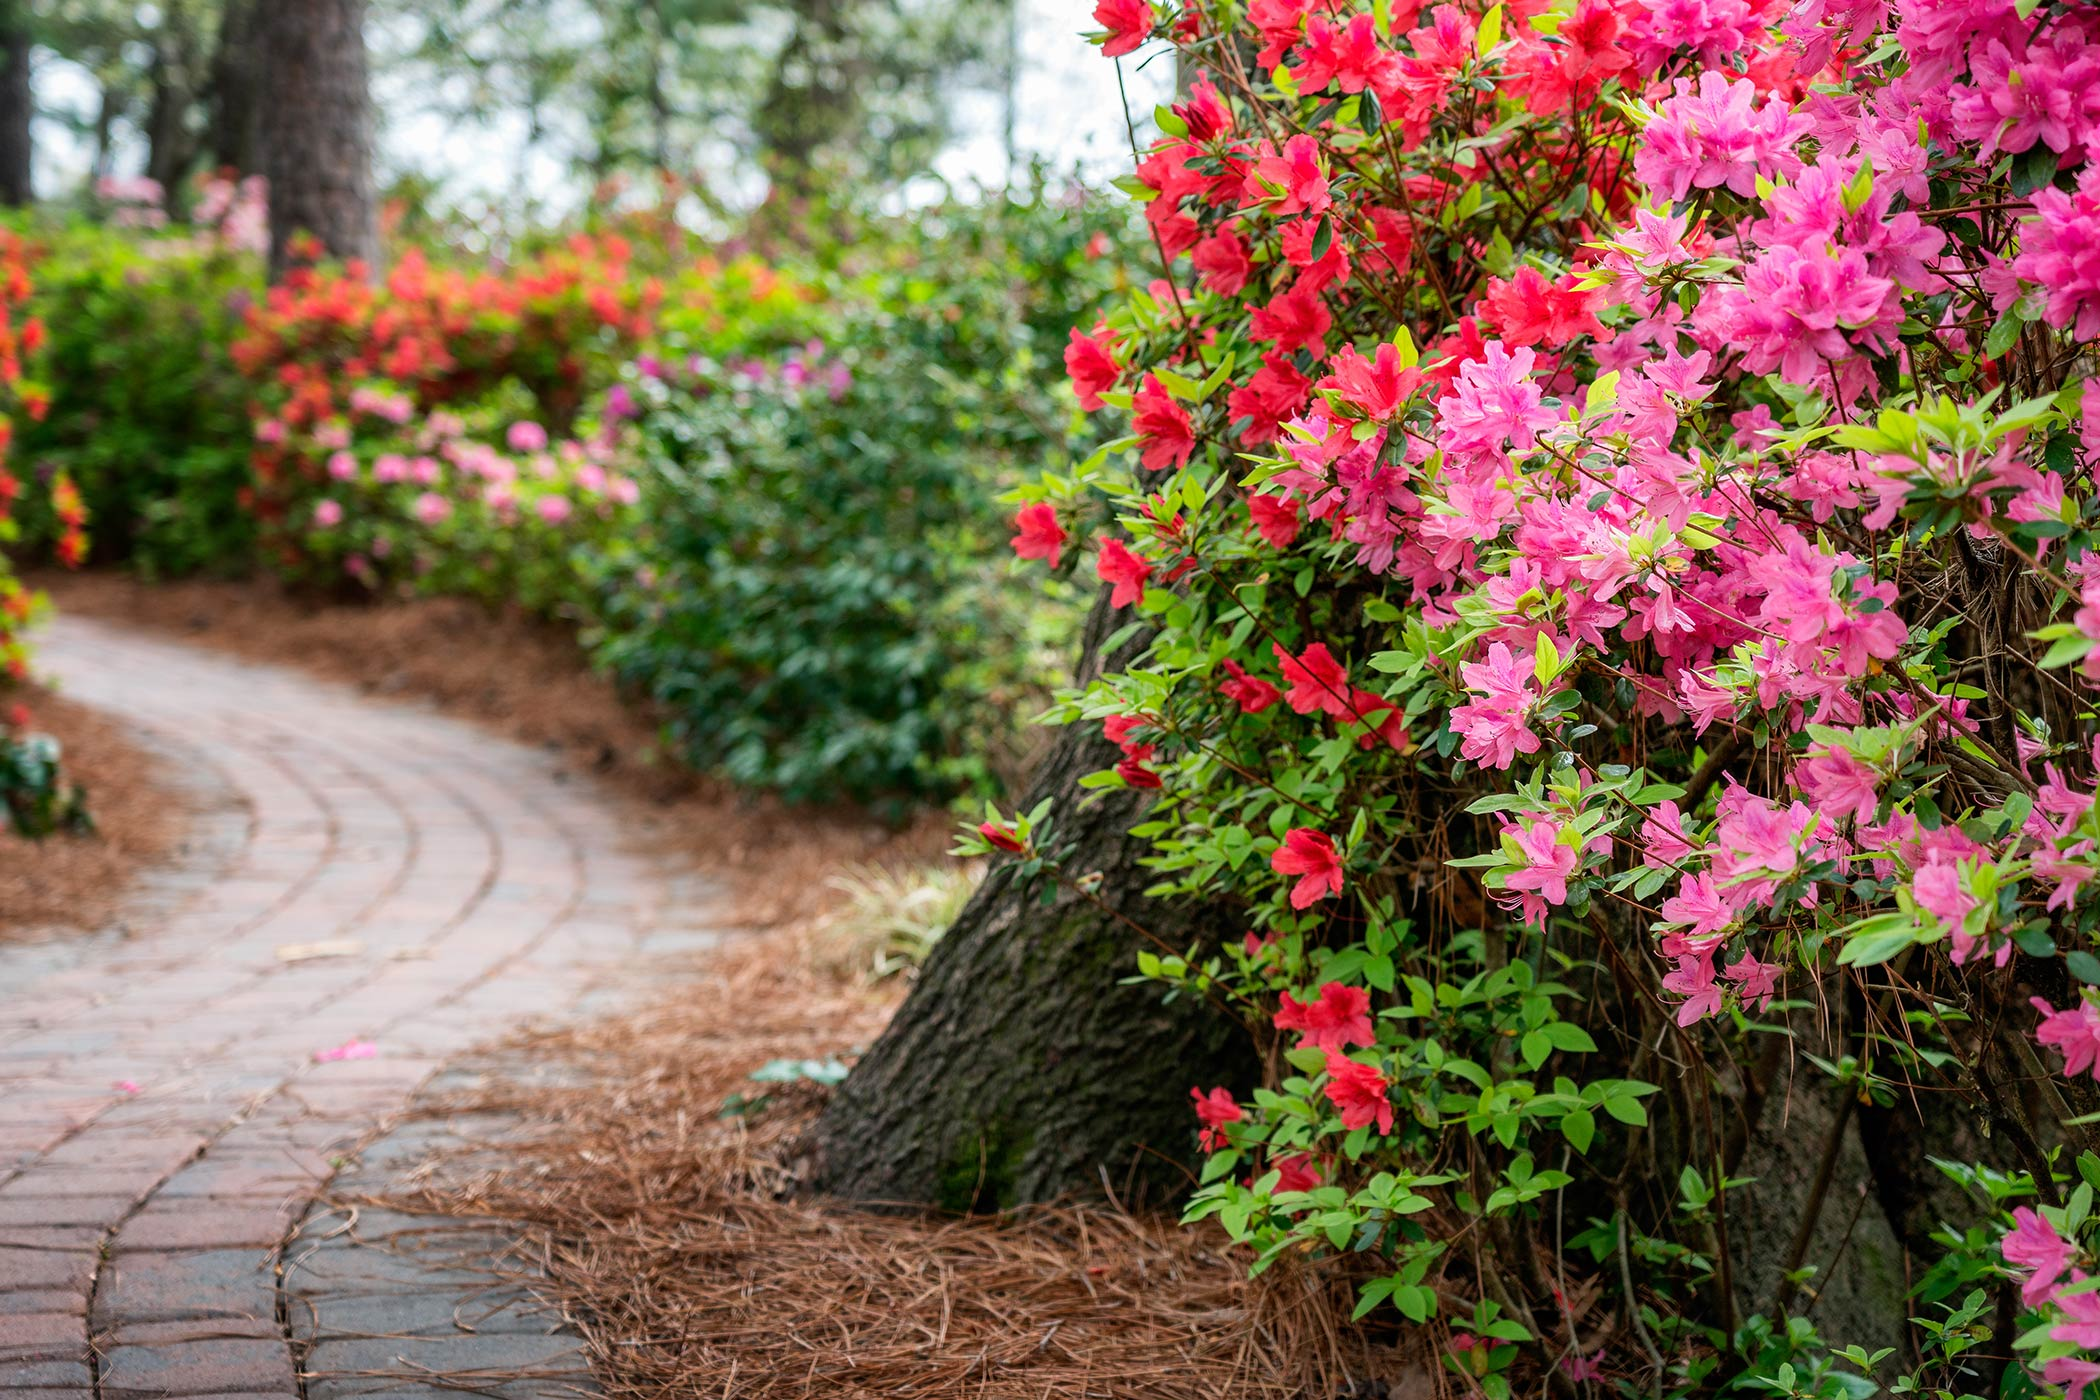 multi-colored flowering shrubs along a path